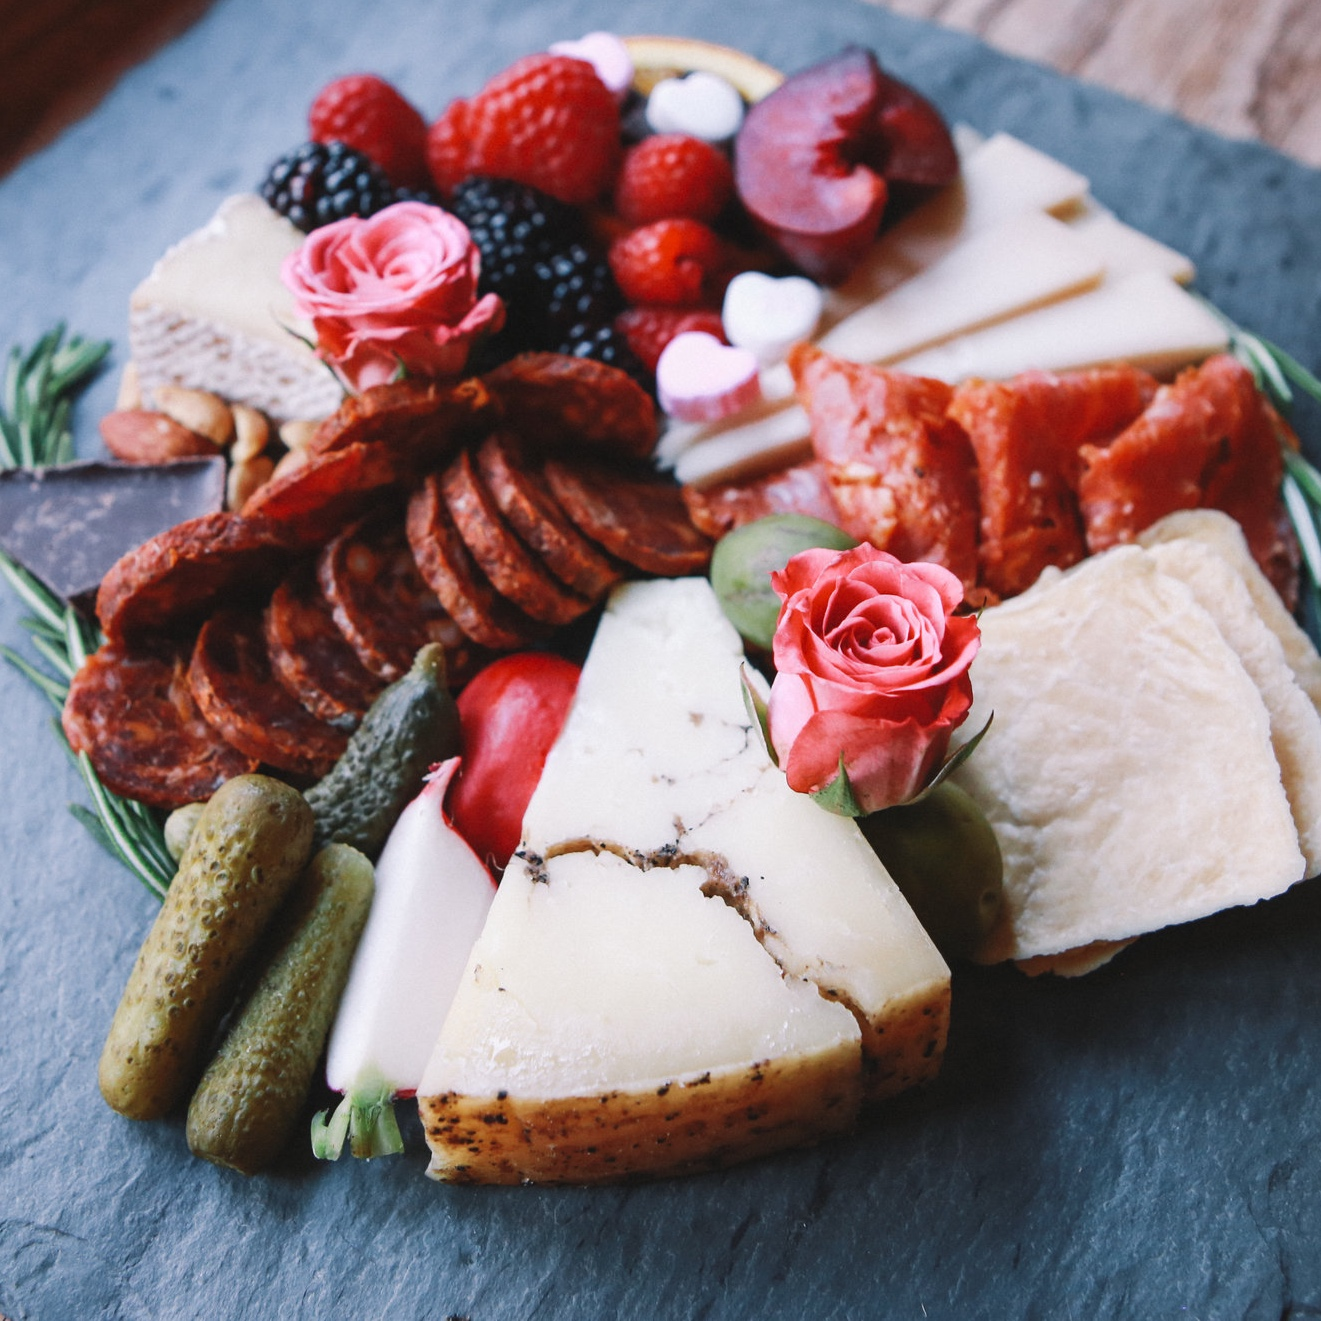 BRIE MINE - A DIY Workshop with Lois + That Cheese Plate